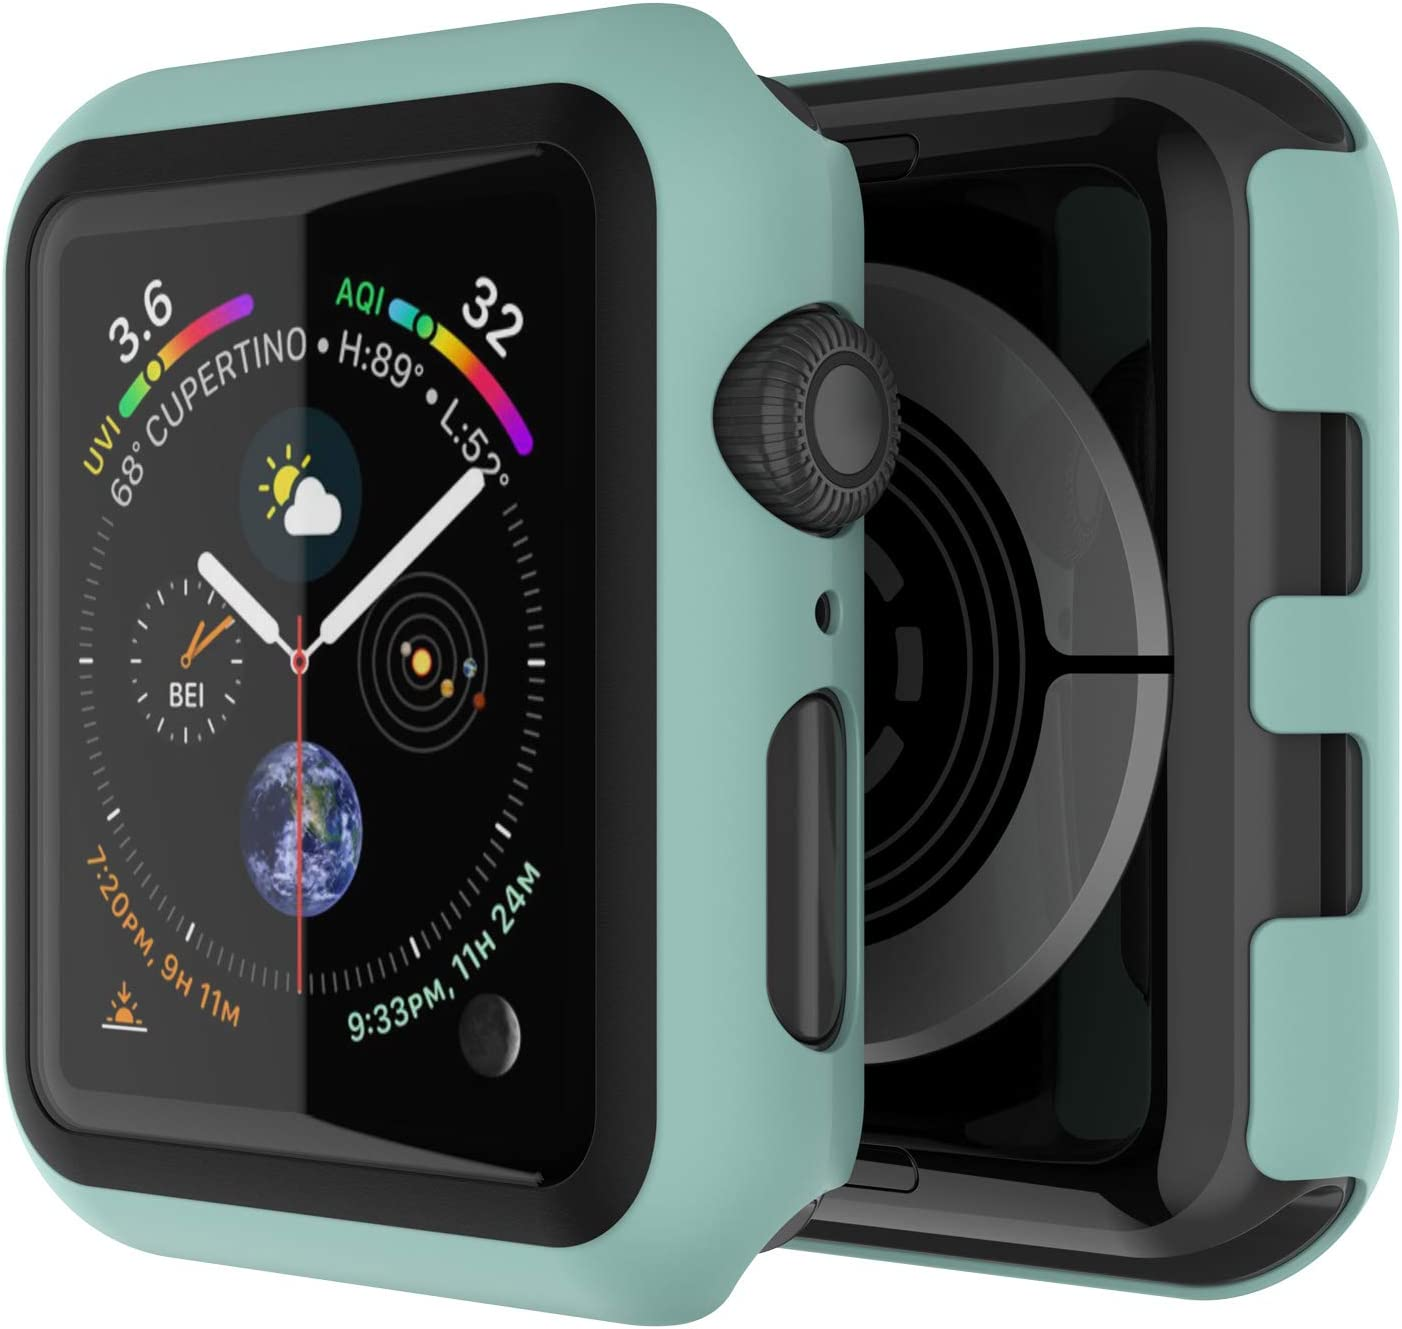 Punkcase for Apple Watch 42mm Bumper Case W/Build in Screen Protector   9H Hardened Tempered Glass iWatch 3 Cover   Full Body Protection   Ultra Slim Design for Apple iWatch Series 3/2/1 (Green)